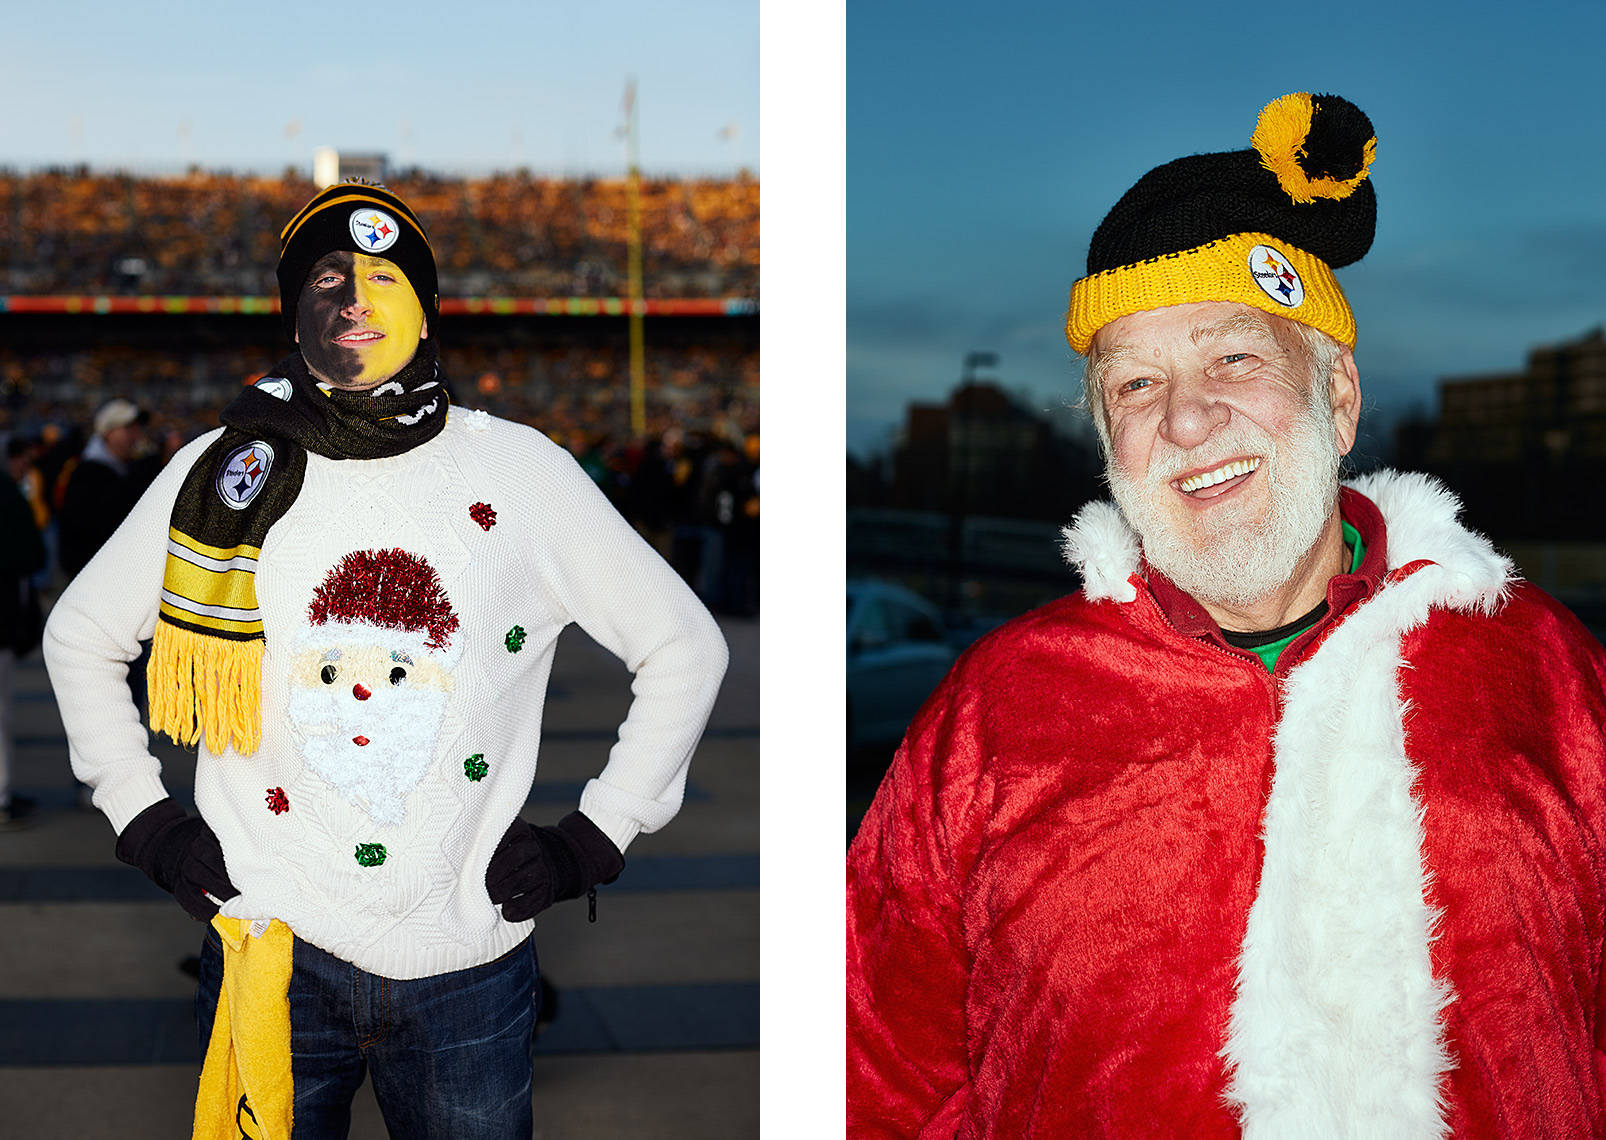 Philadelphia Photographer STEVE BOYLE - Pittsburgh Steelers  Fans - NFL Football